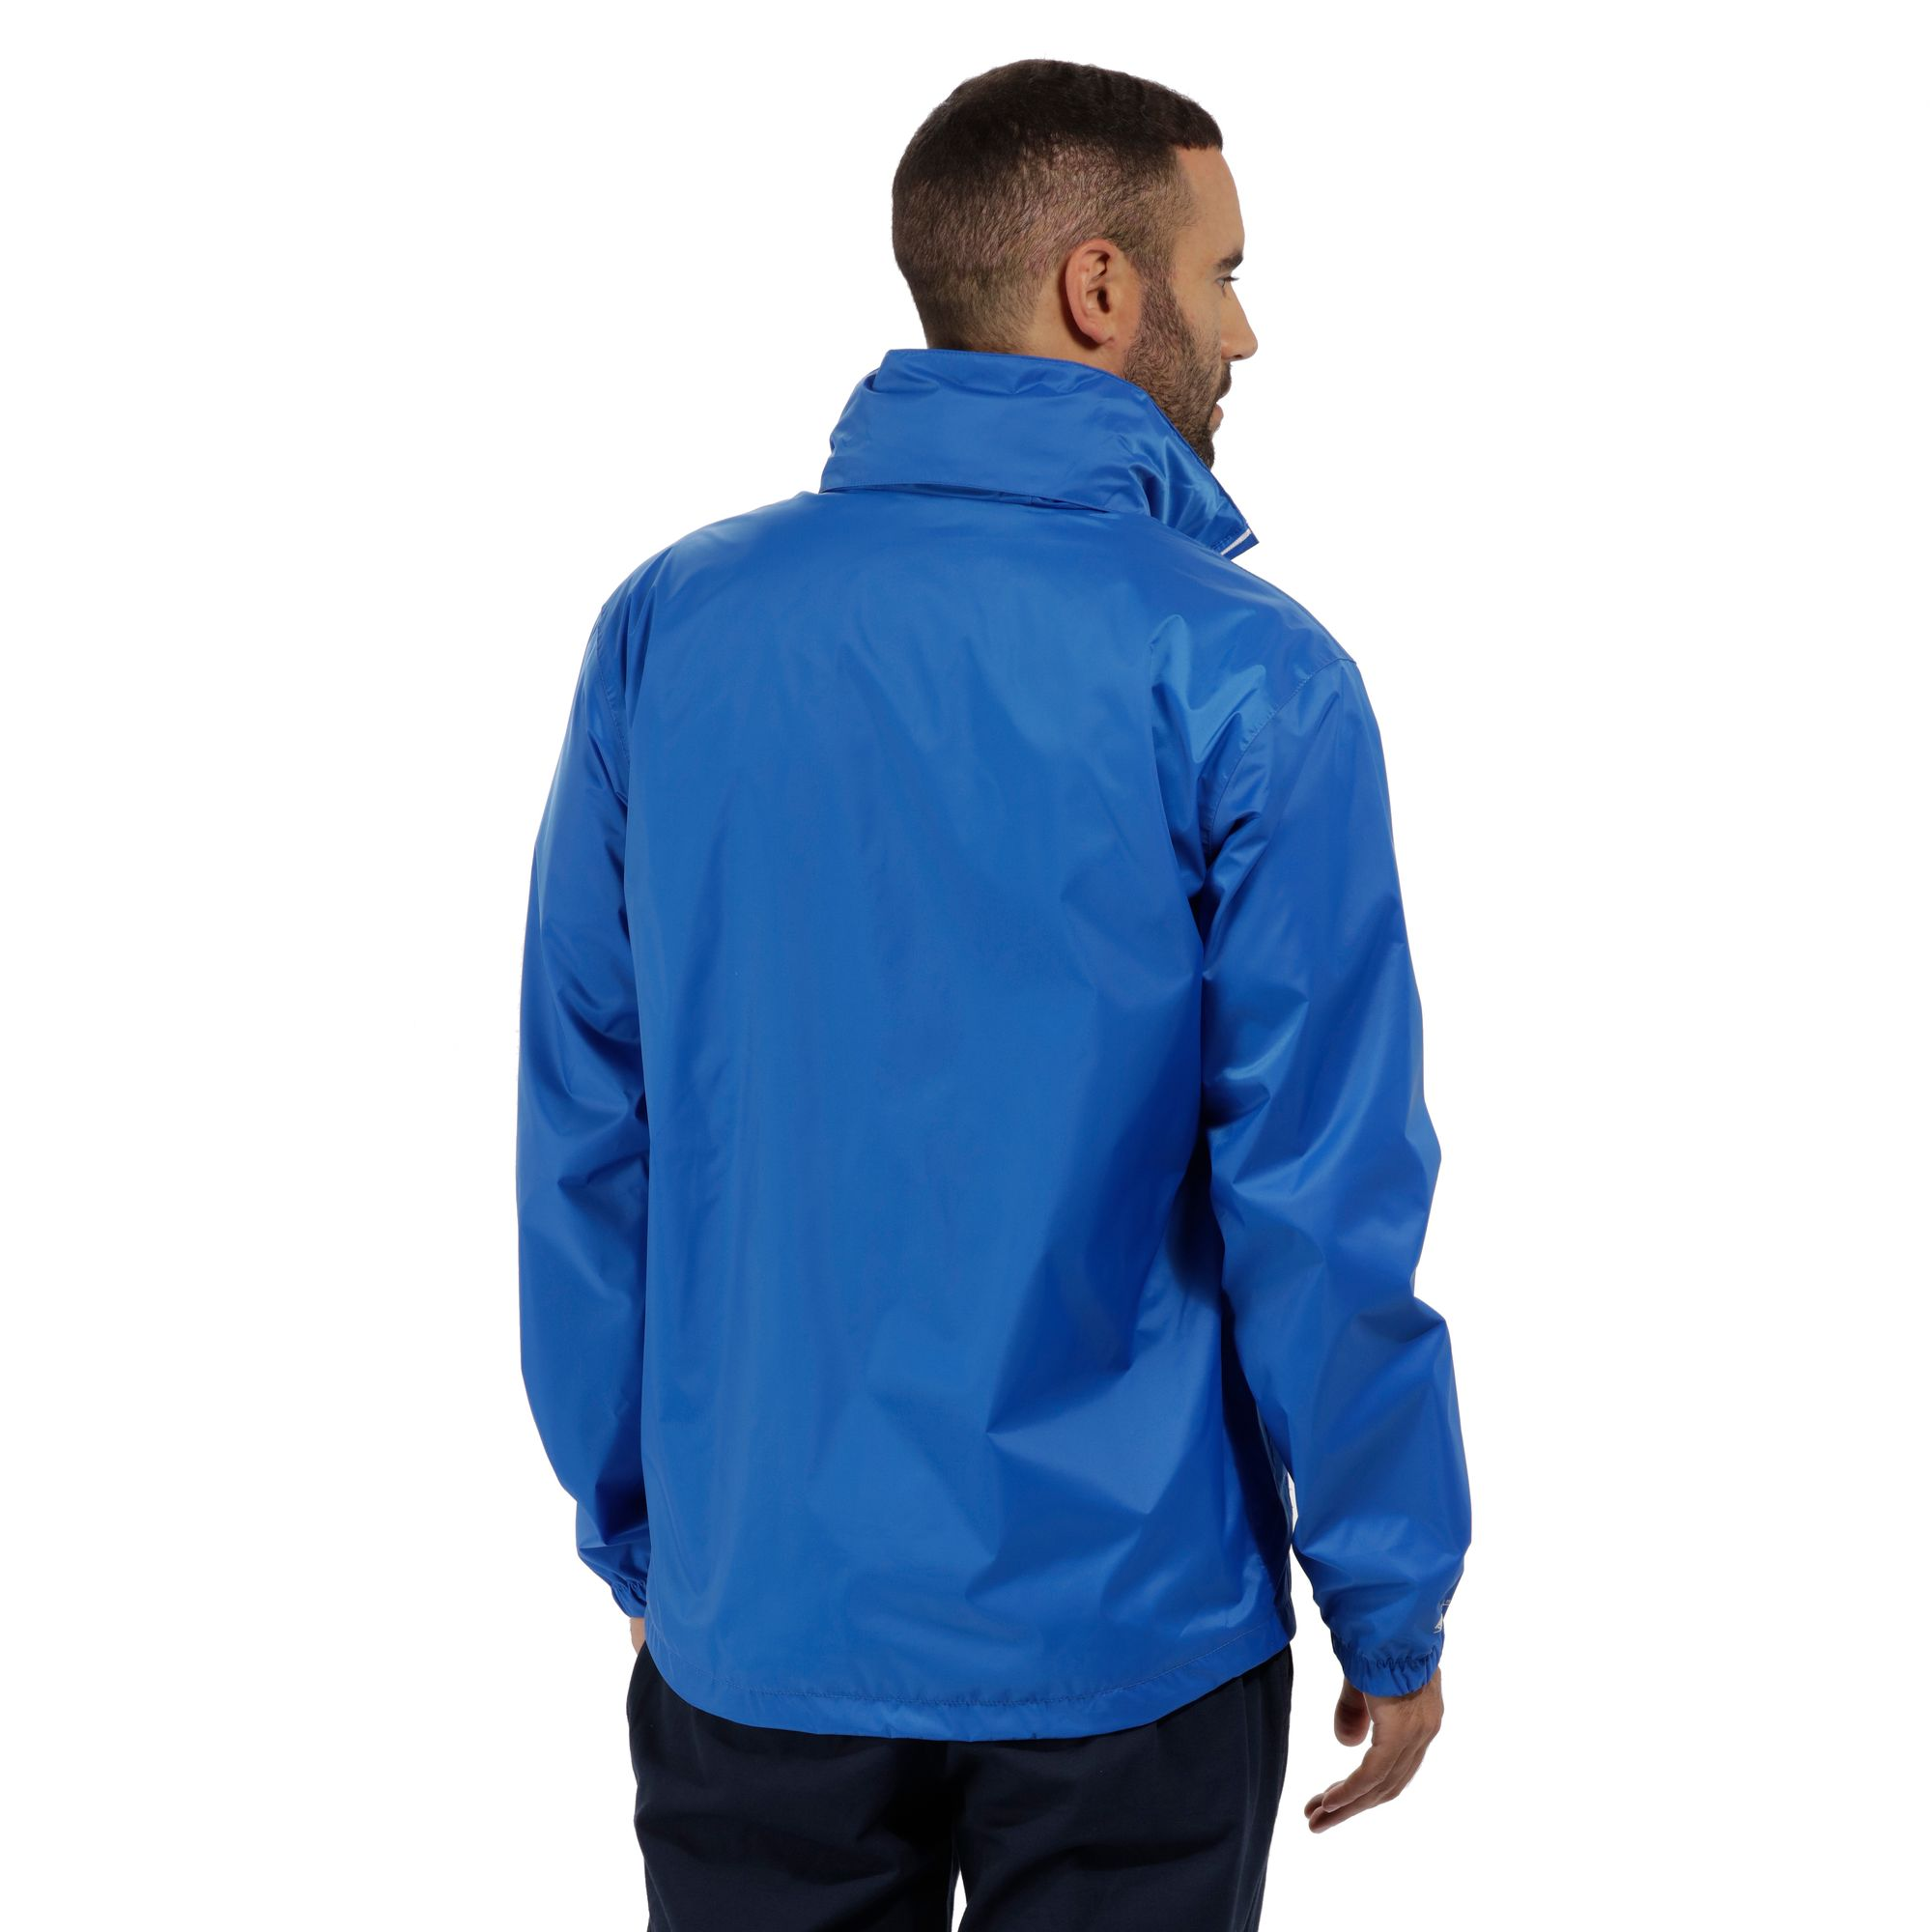 Mens-Regatta-Lightweight-Waterproof-Windproof-Jacket-Clearance-RRP-70-00 thumbnail 36